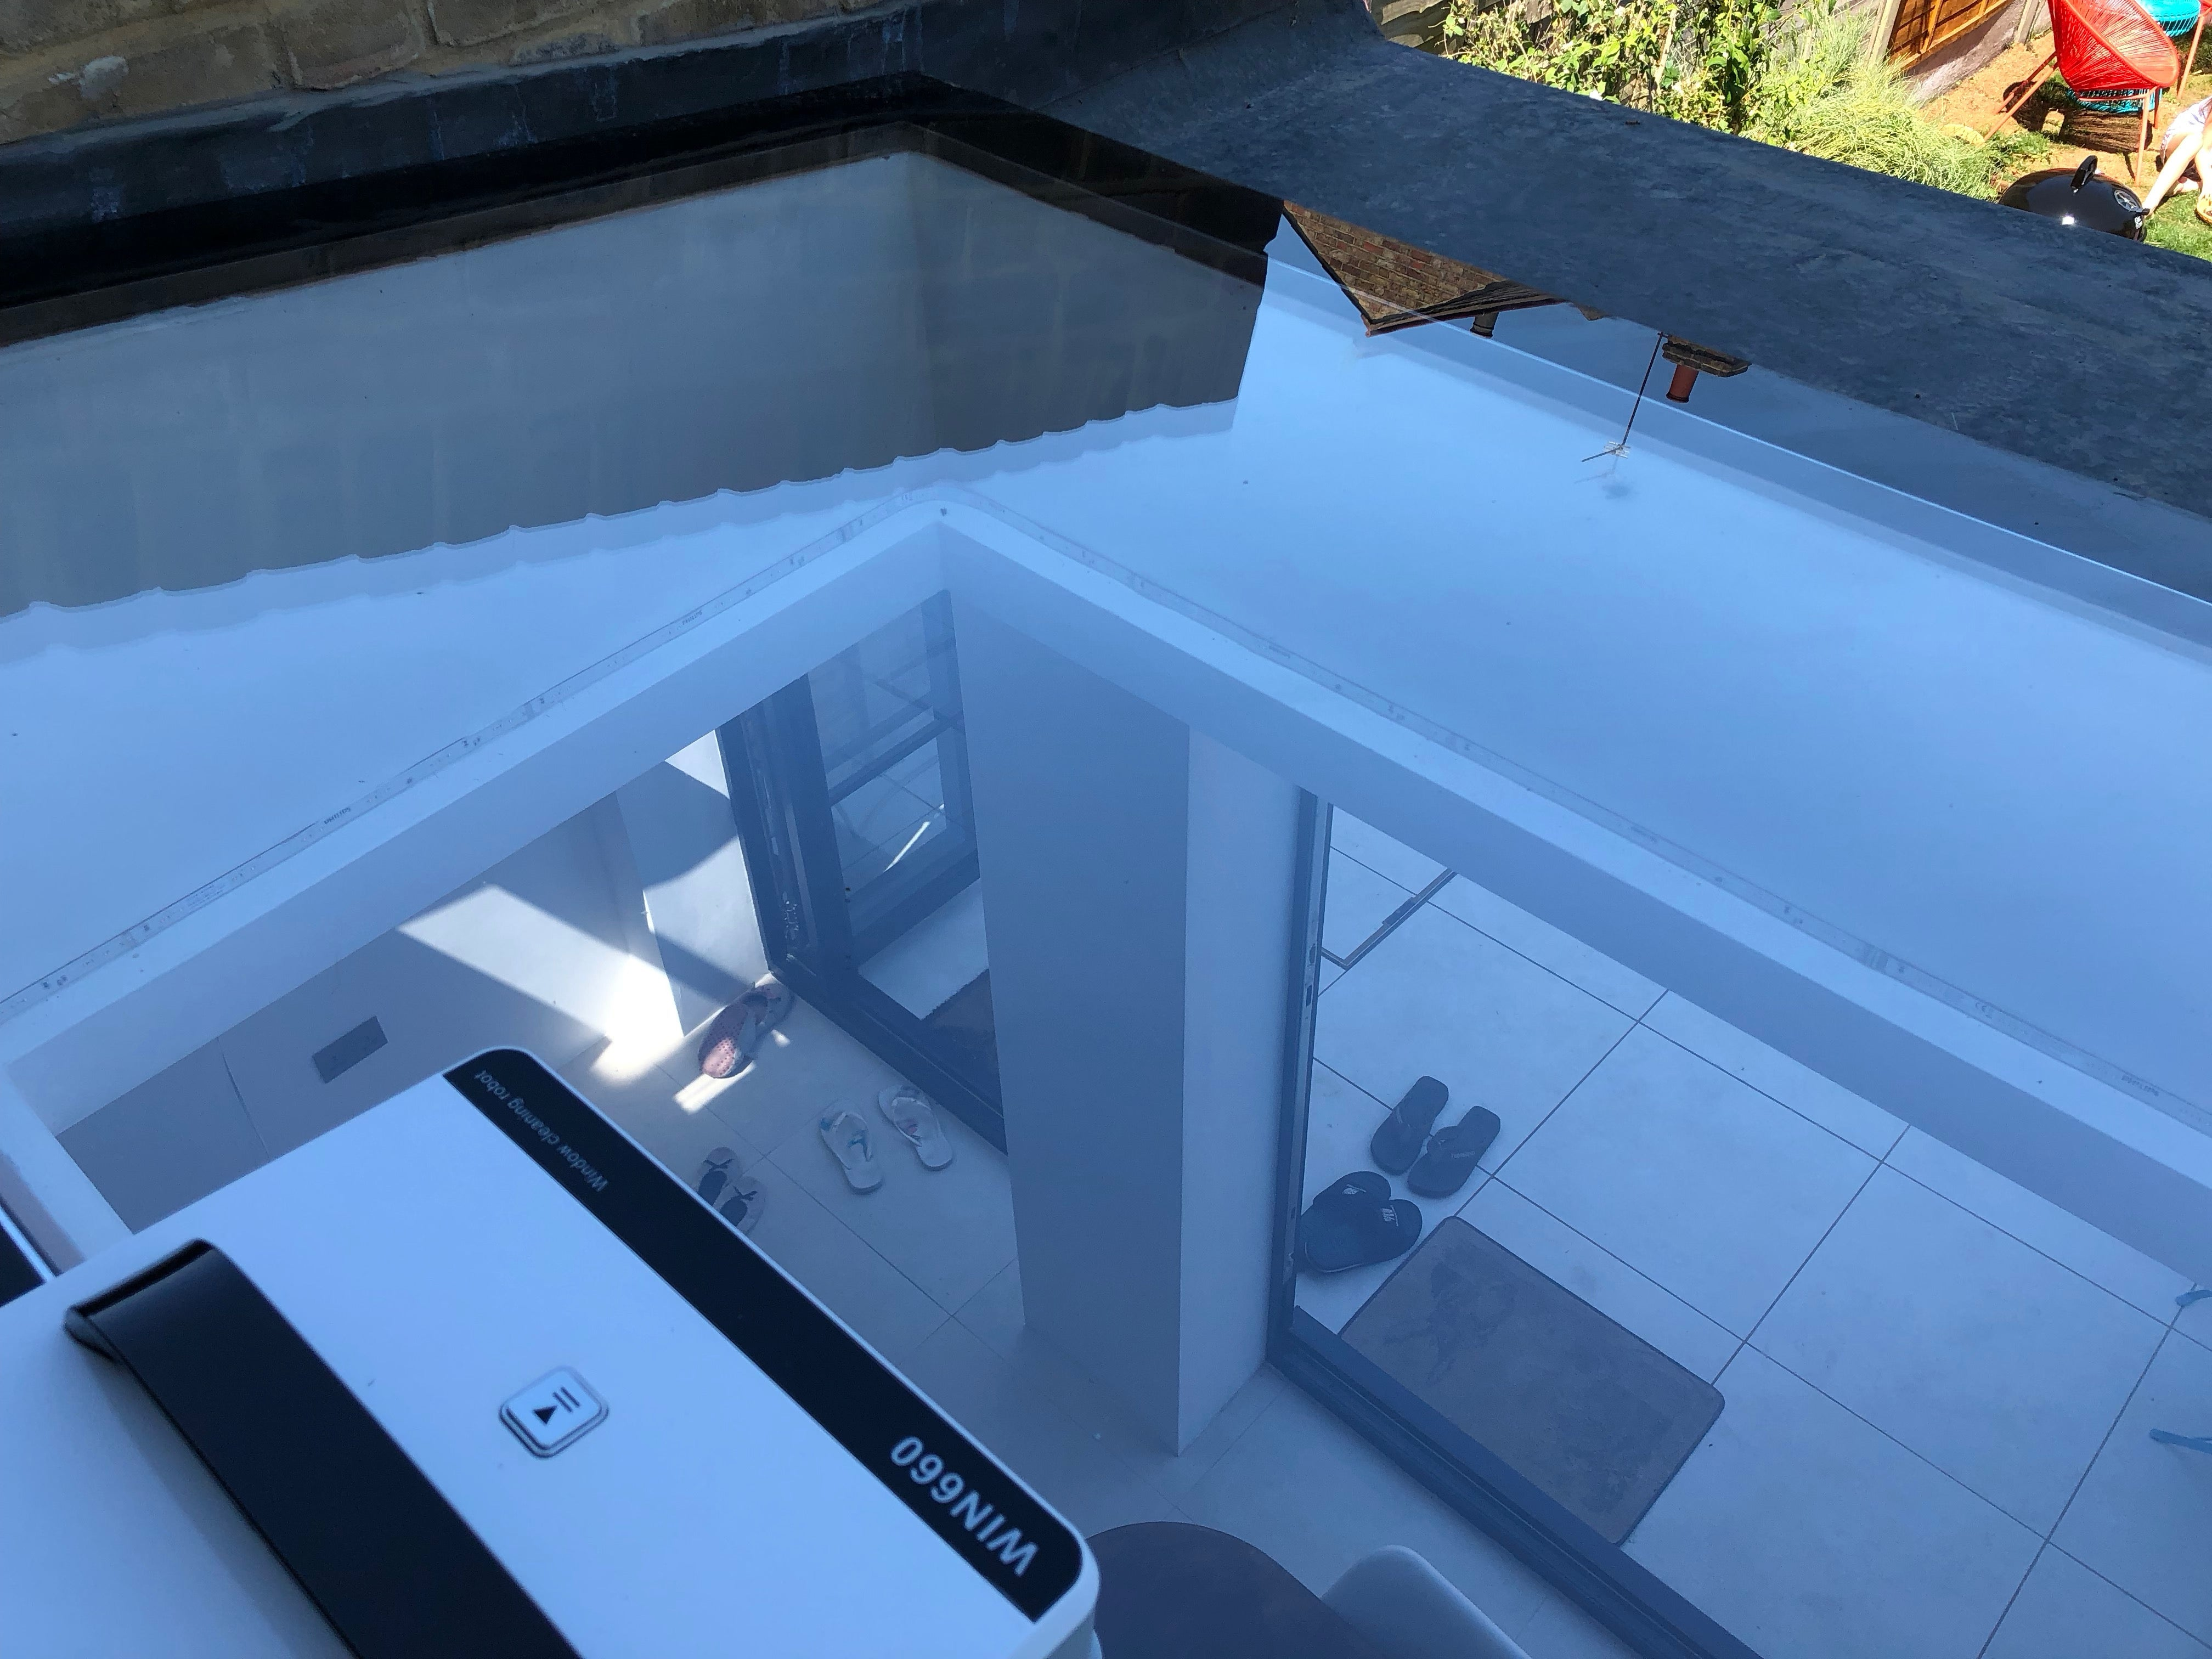 Alfawise WIN660 Robotic Window Cleaner shiny results